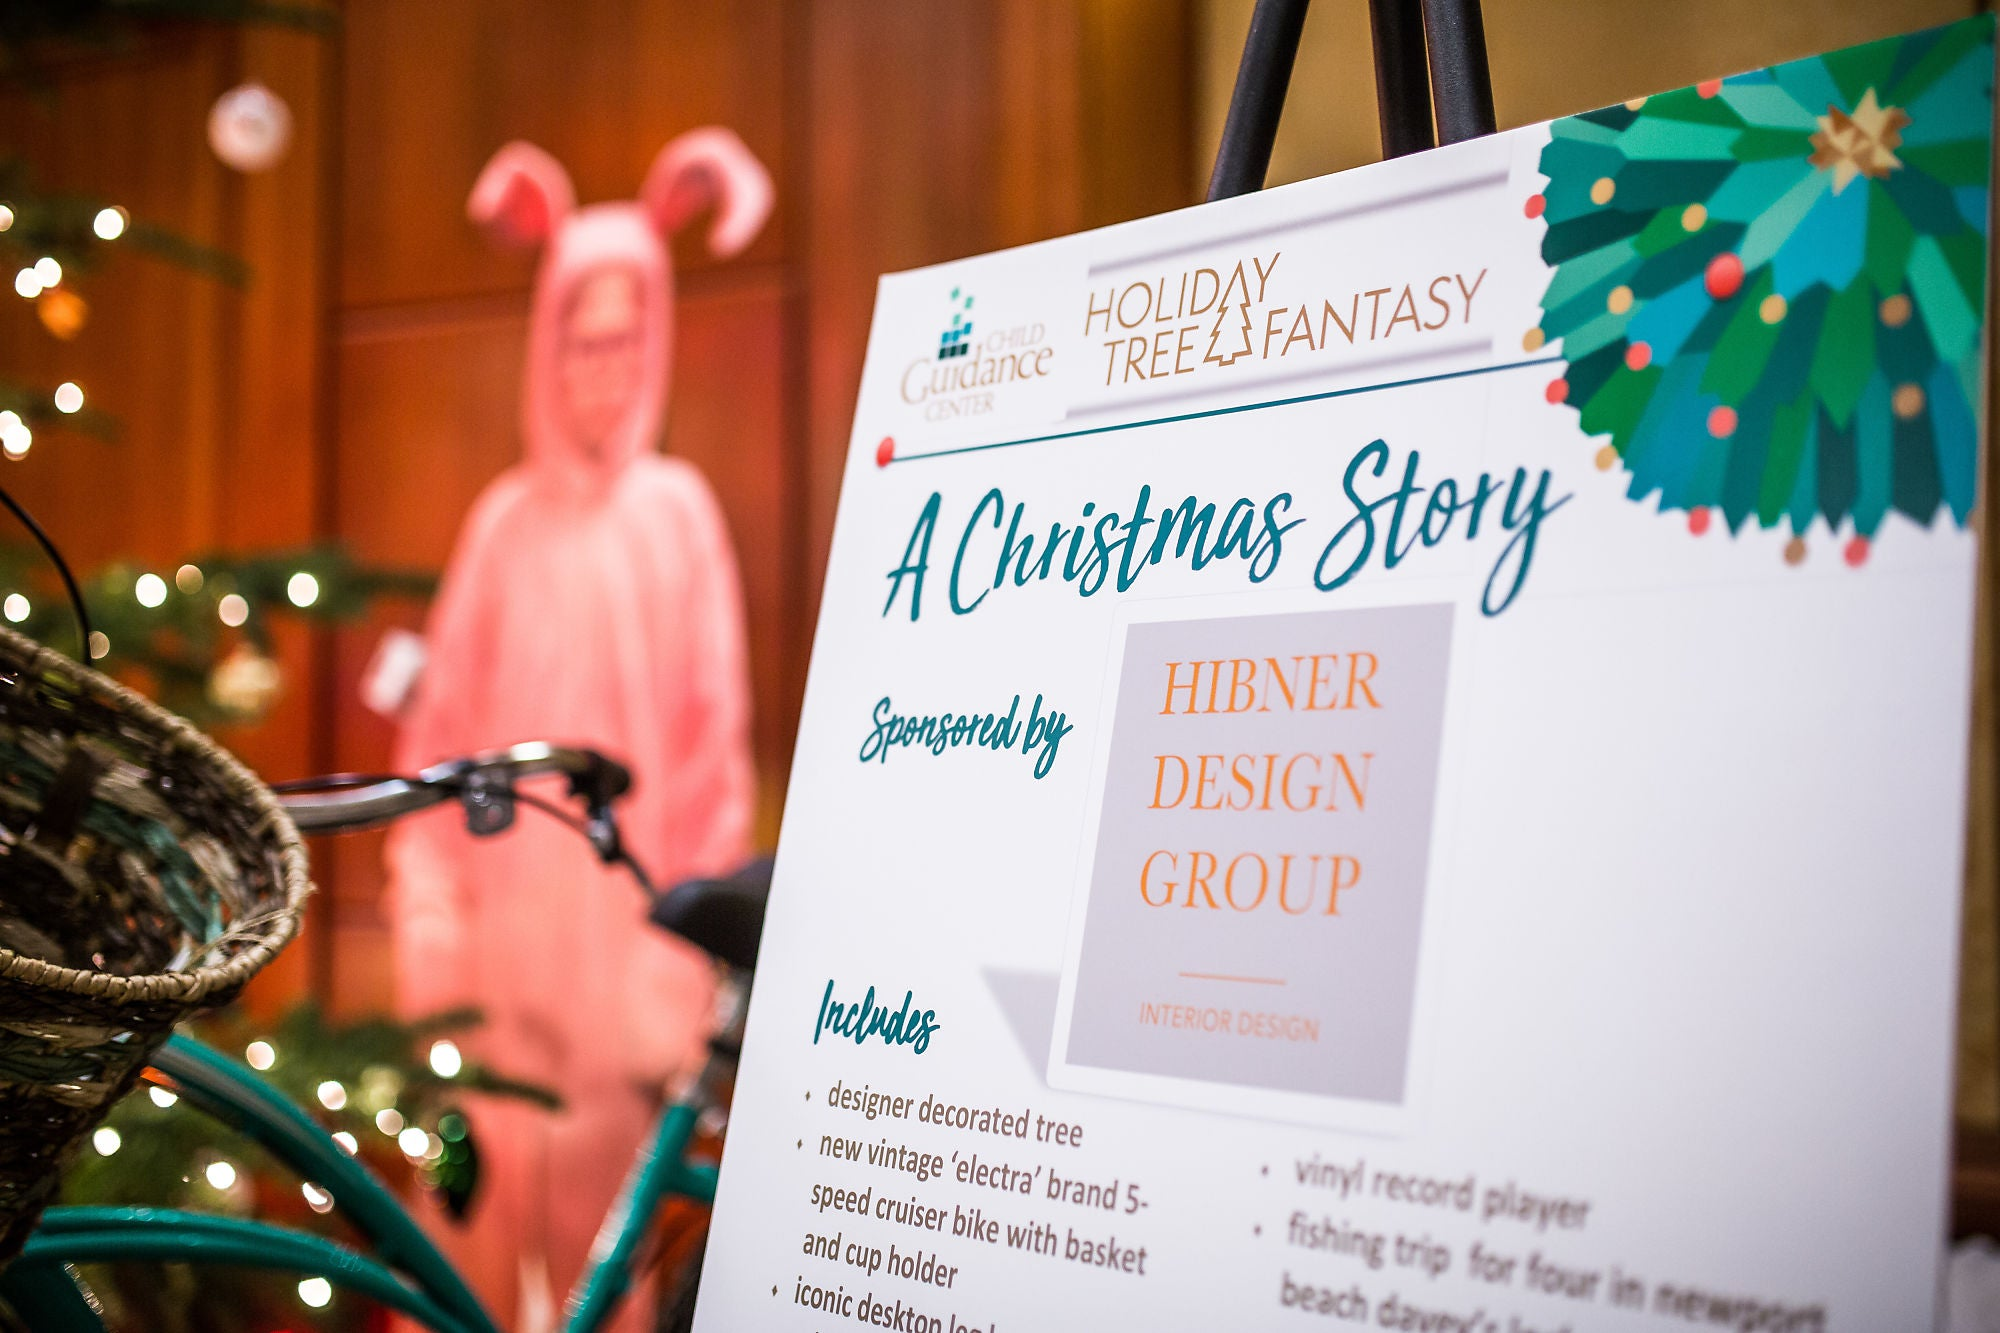 An information board titled as The Christmas Story, sponsored by Hibner Design Group